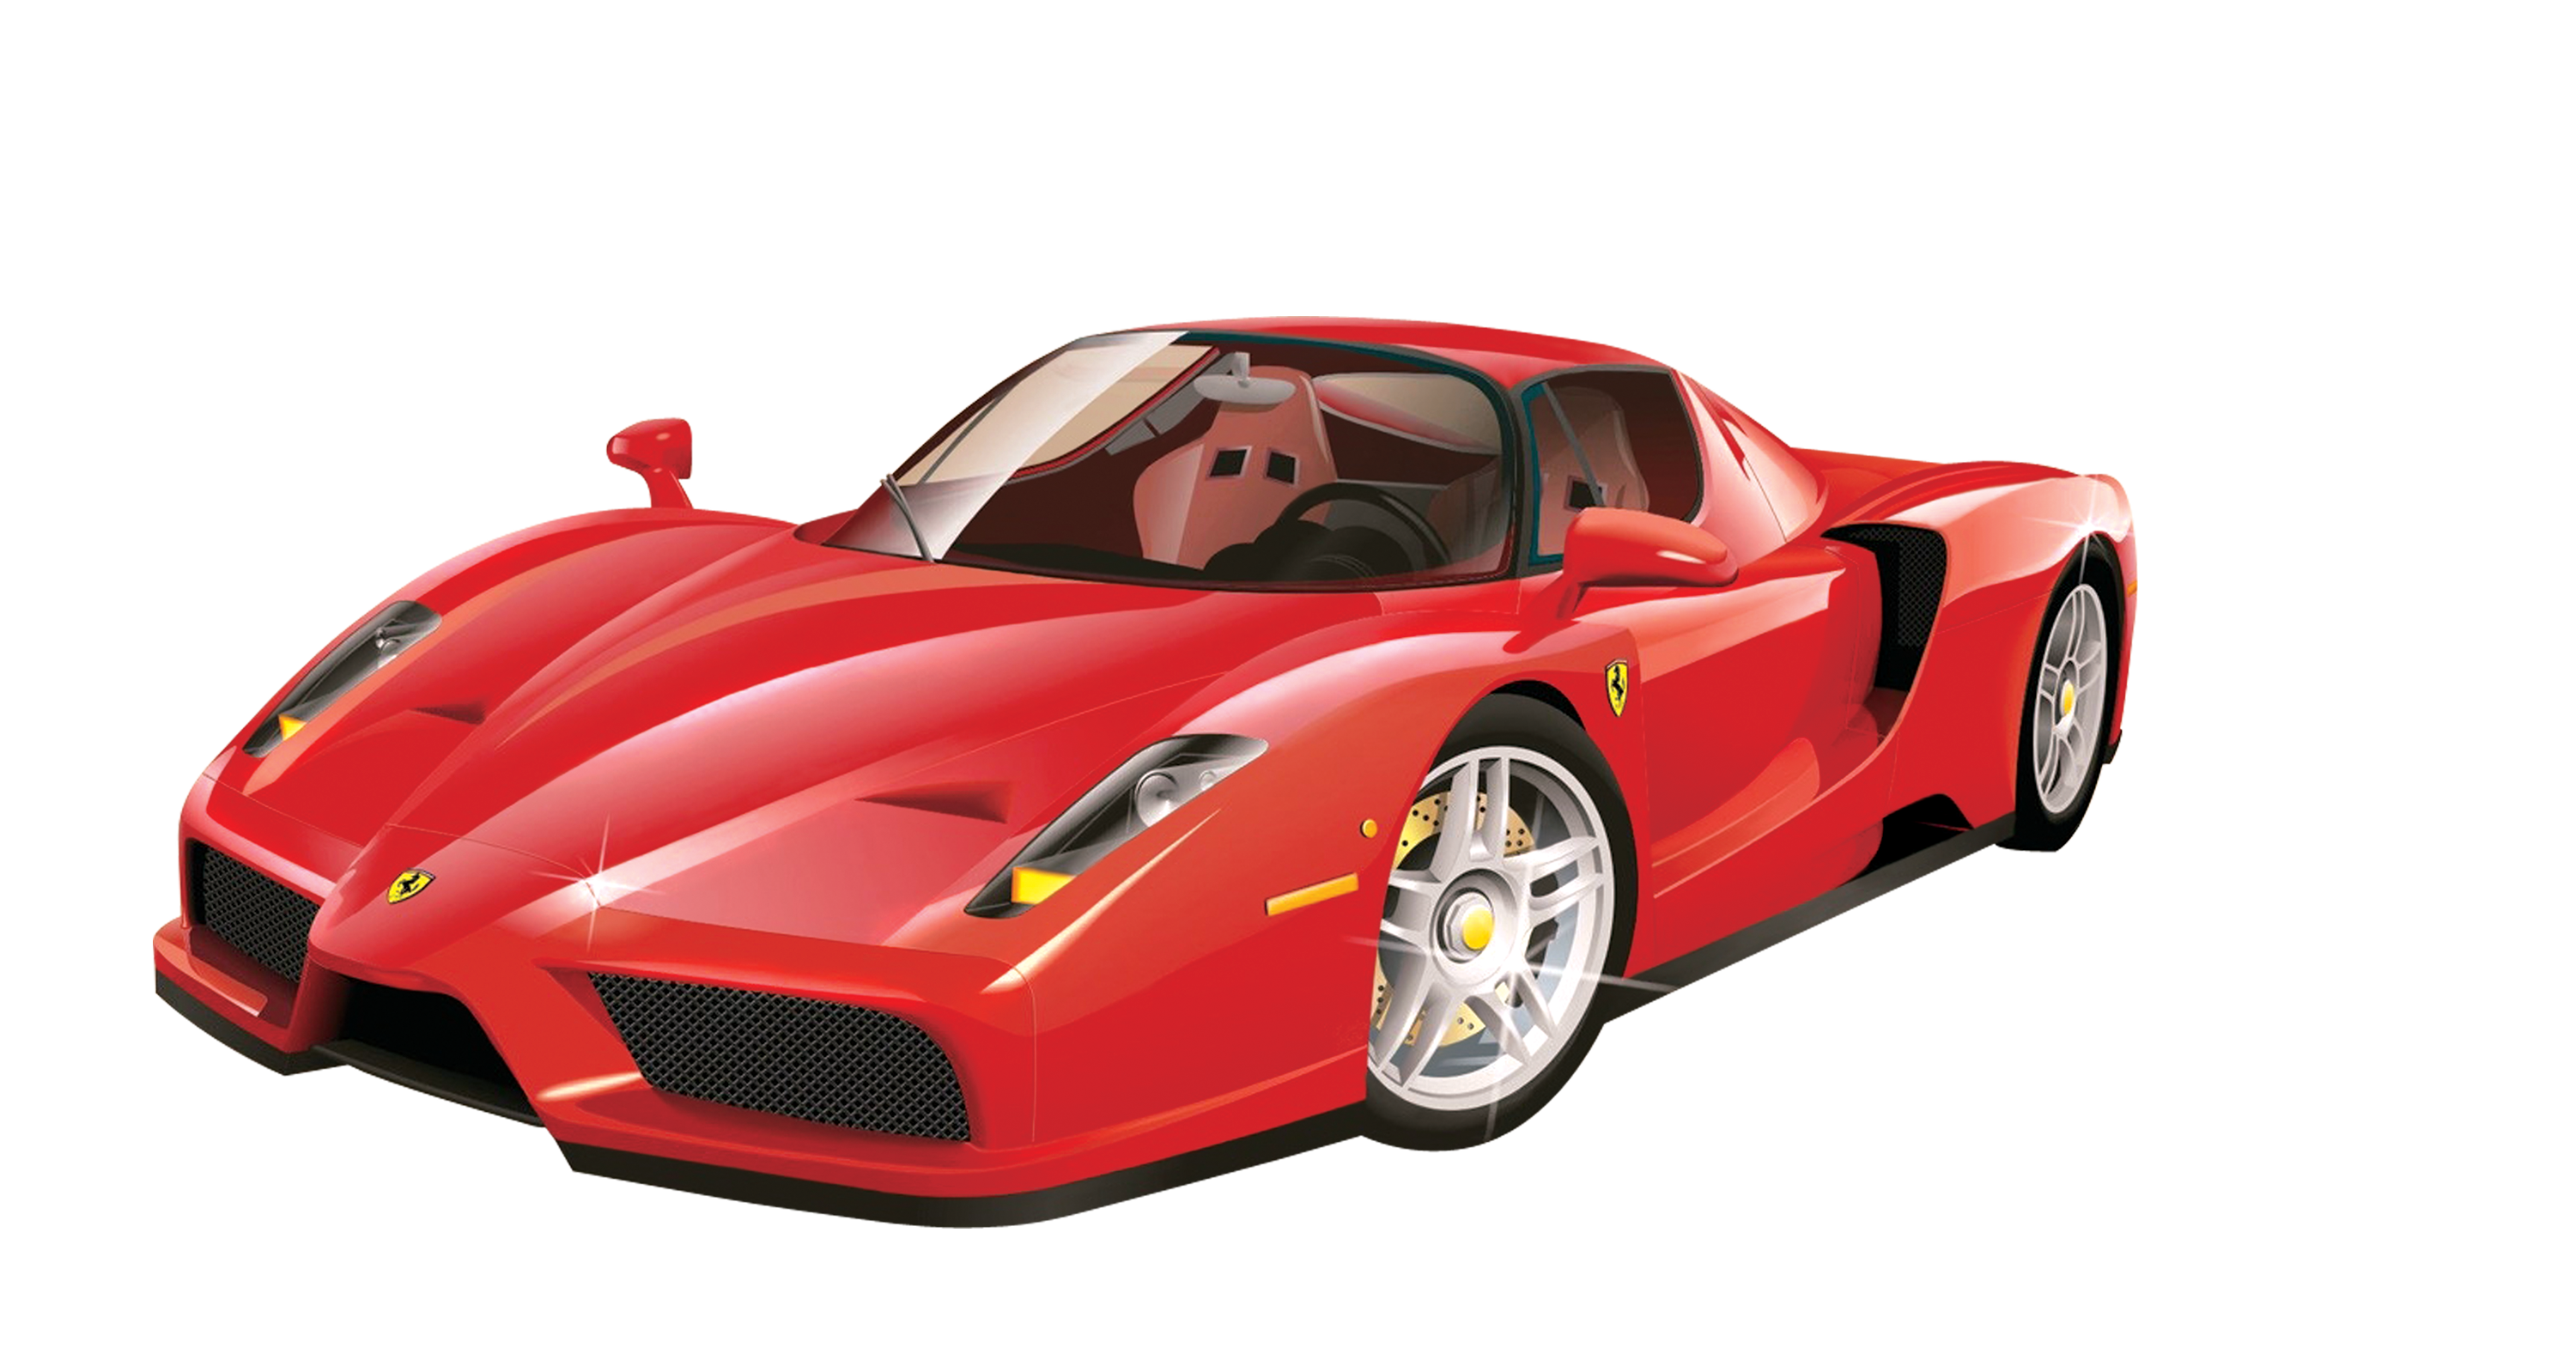 Laferrari drawing. Enzo ferrari sports car